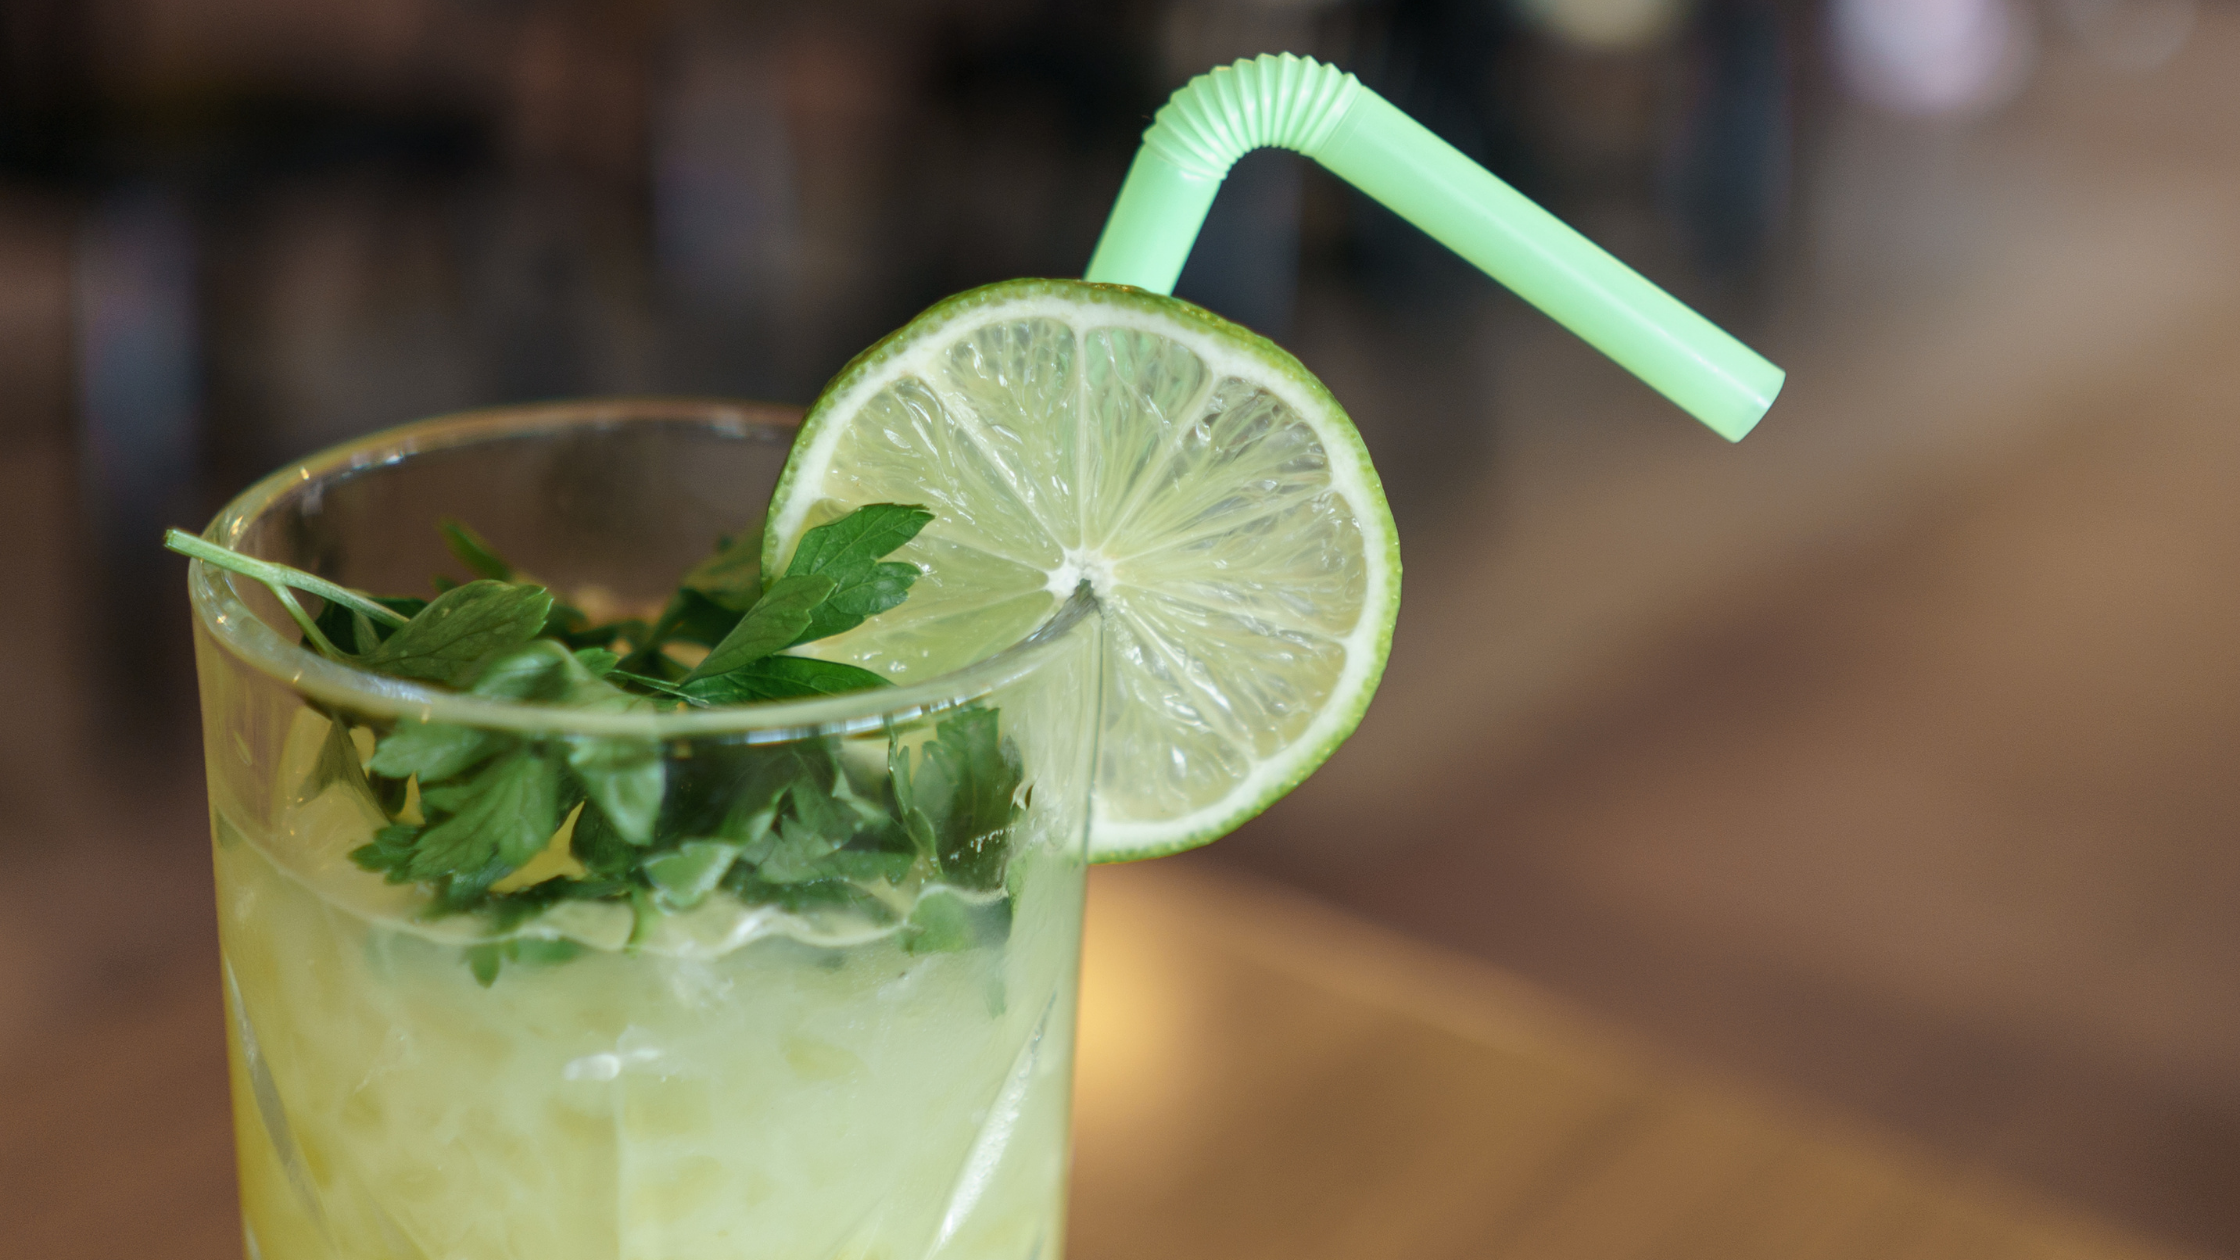 Food to eat: Lime Juice